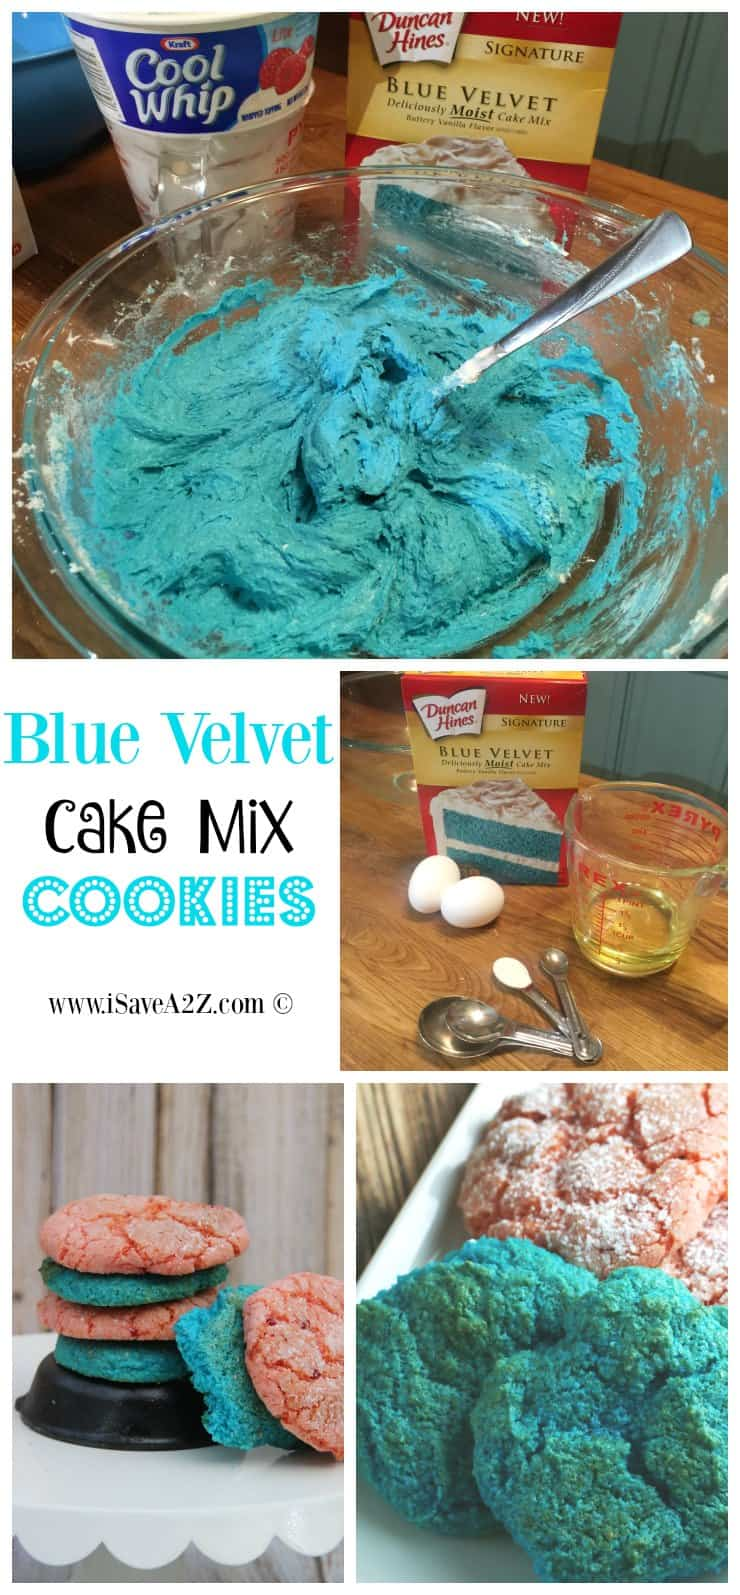 Top 45 Recipe Variations For Cake Mix Cookies Isavea2z Com